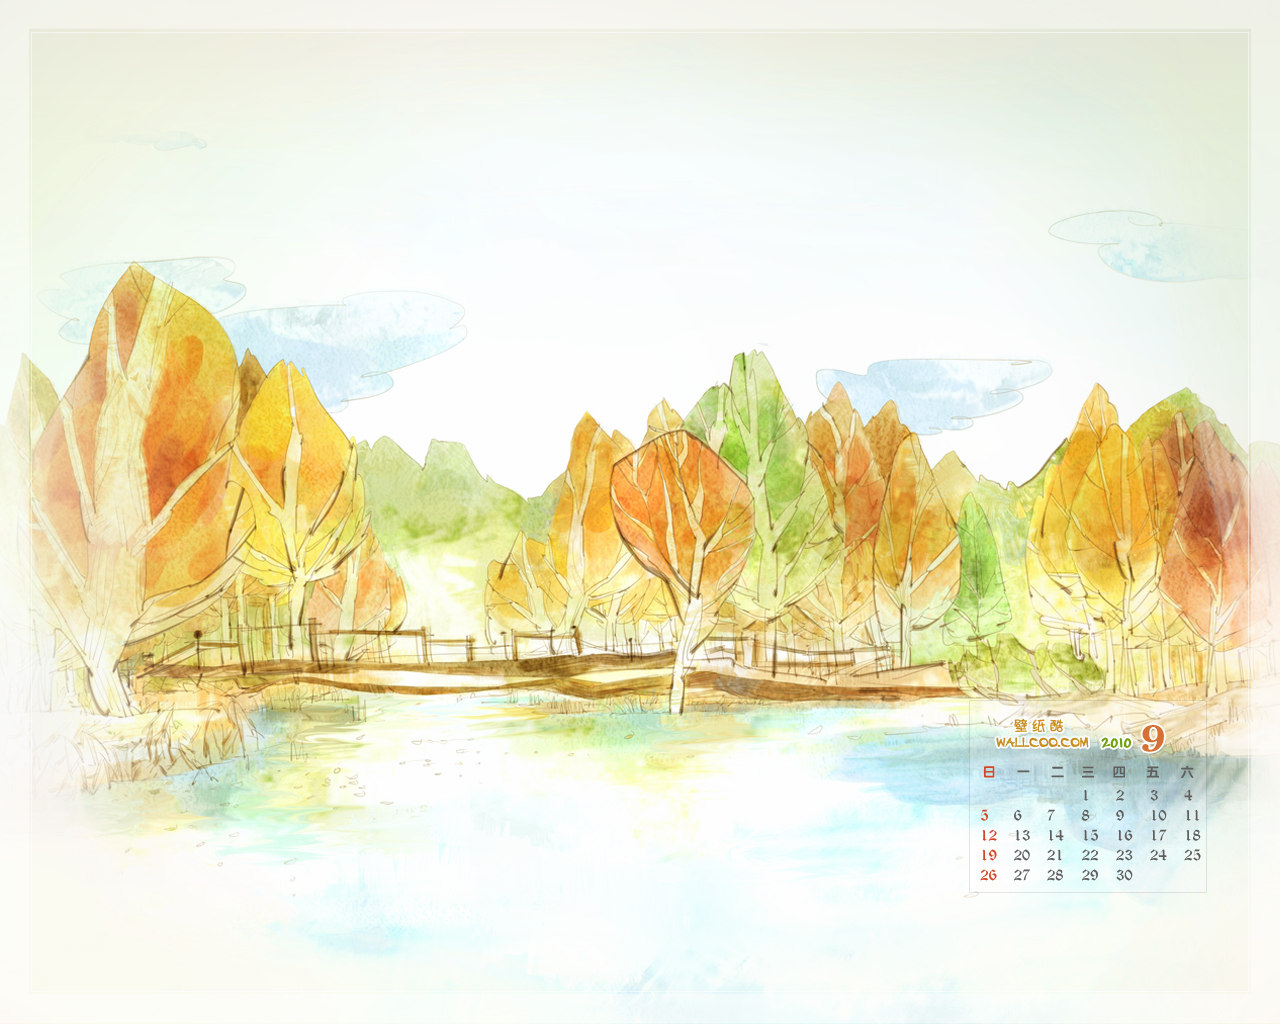 Wallpaper calendar years 13480